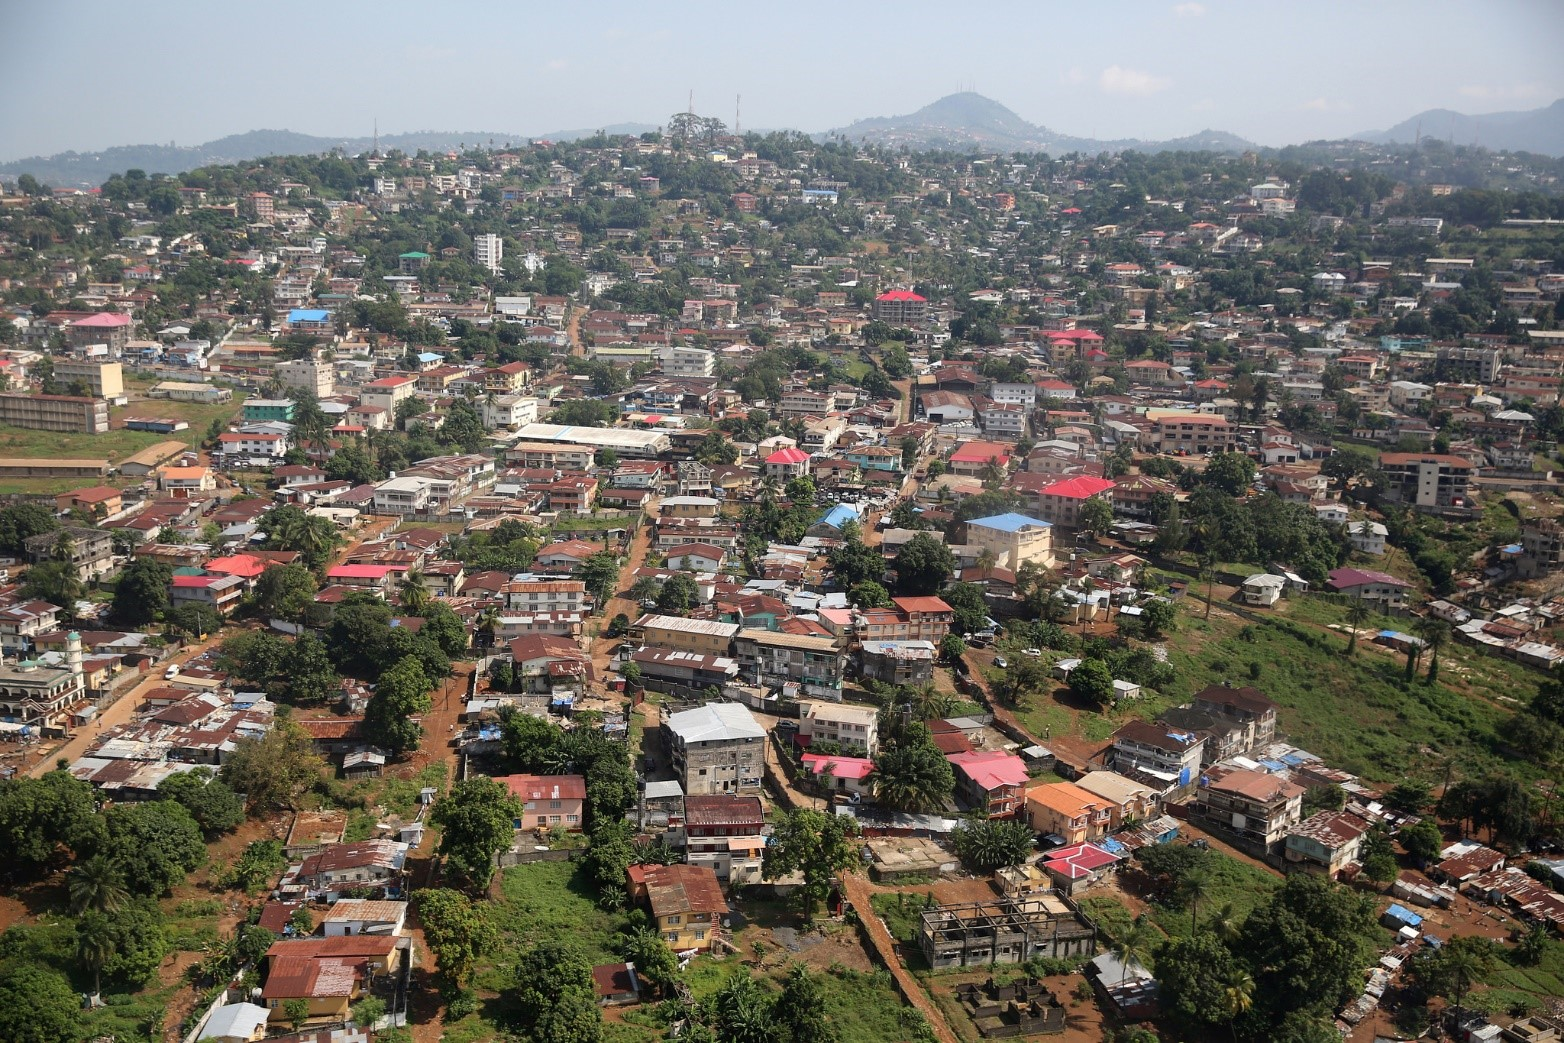 A view of Freetown Sierra Leone on December 3, 2014